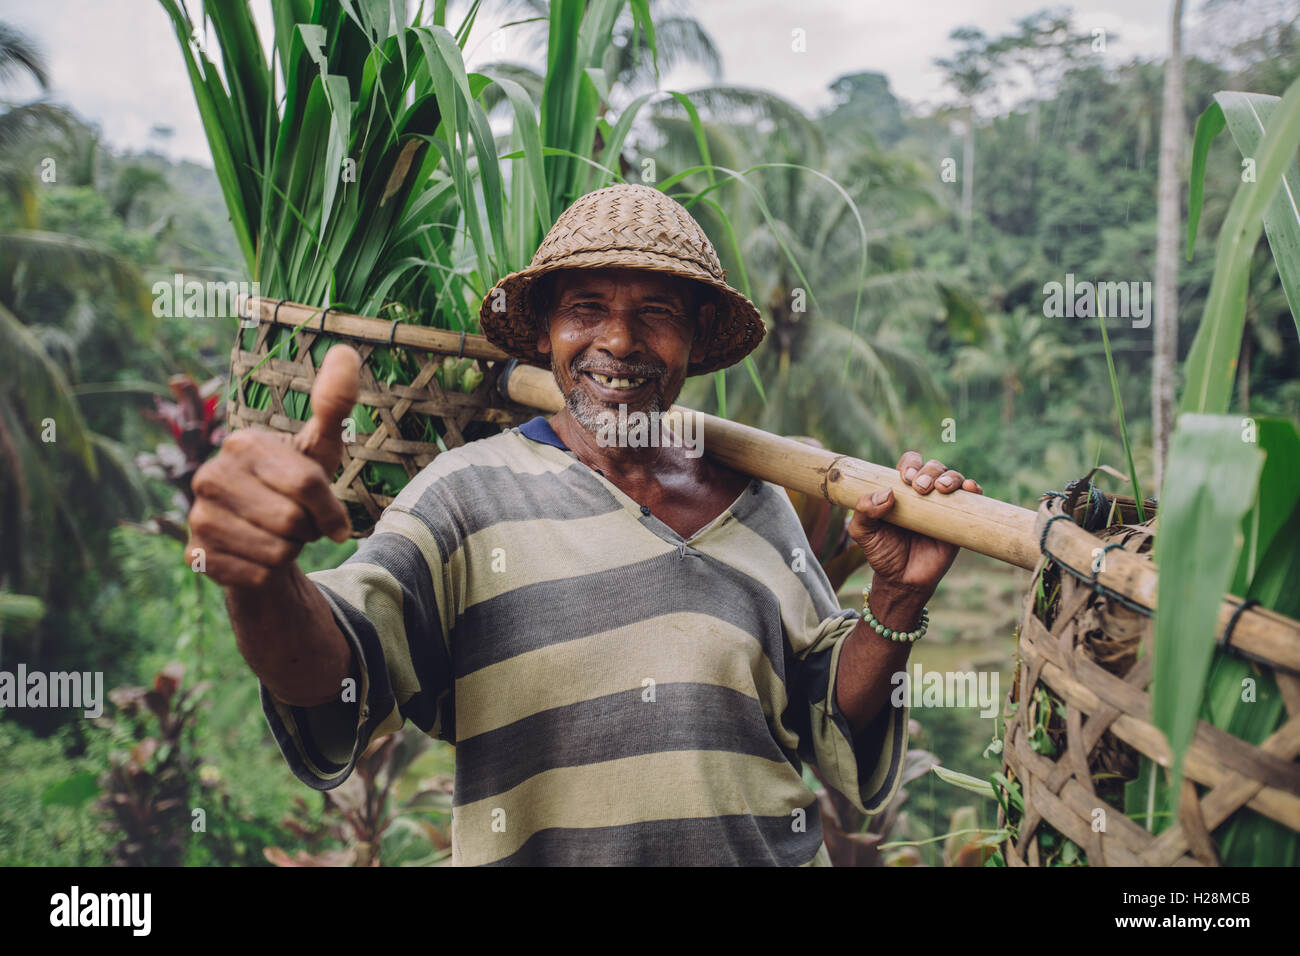 Shot of happy senior farmer giving thumbs up. Senior man smiling and carrying a yoke on his shoulders with seedlings. - Stock Image